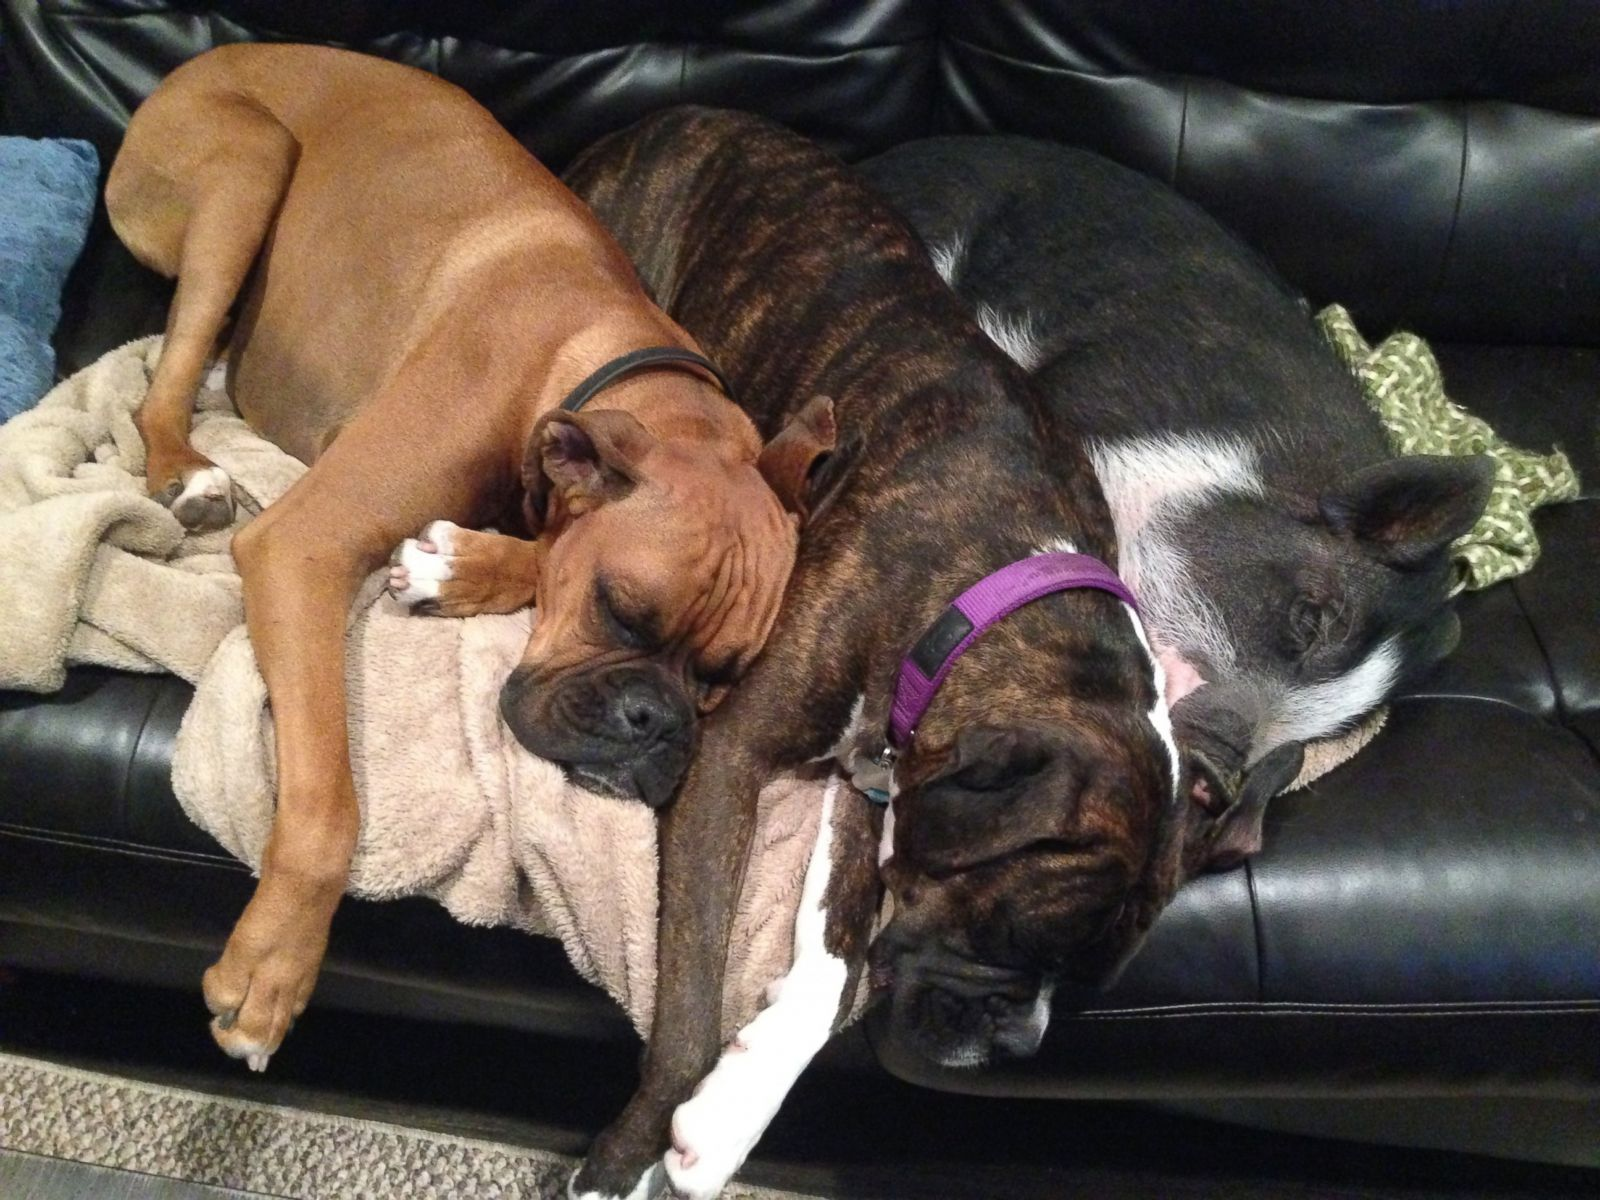 Animal Kingdoms Odd Couples Photos ABC News - Adorable pig whos grown up with dogs believes shes a puppy too